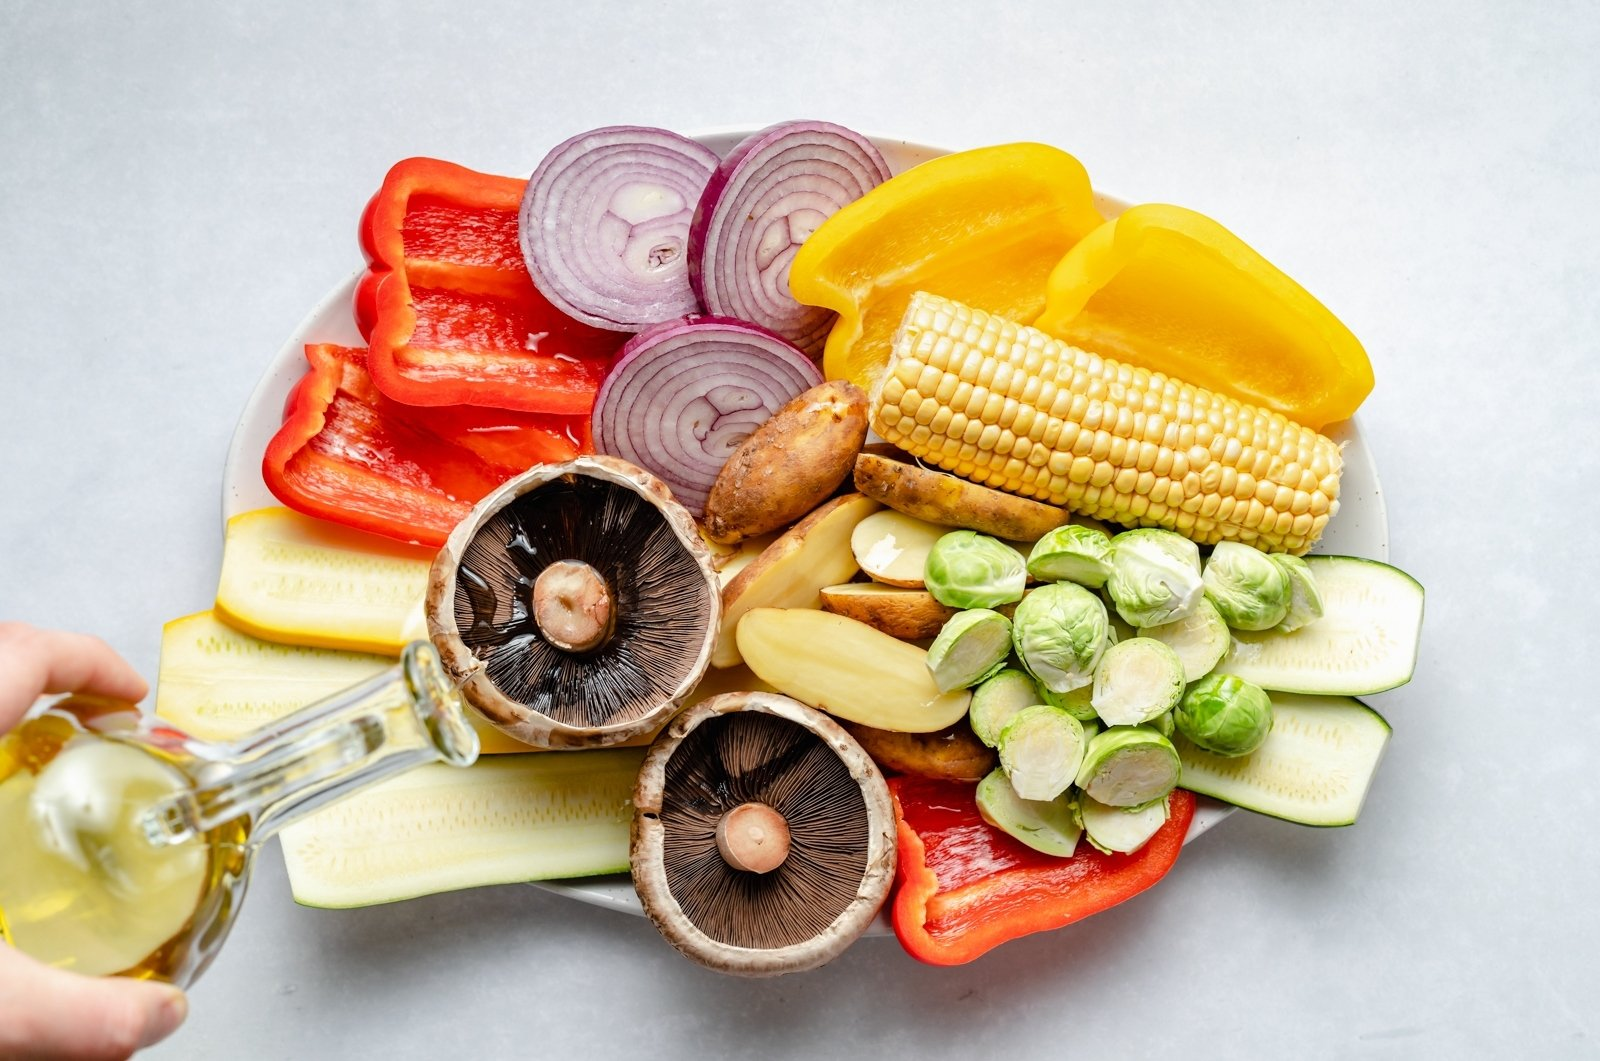 drizzling a platter of vegetables with olive oil